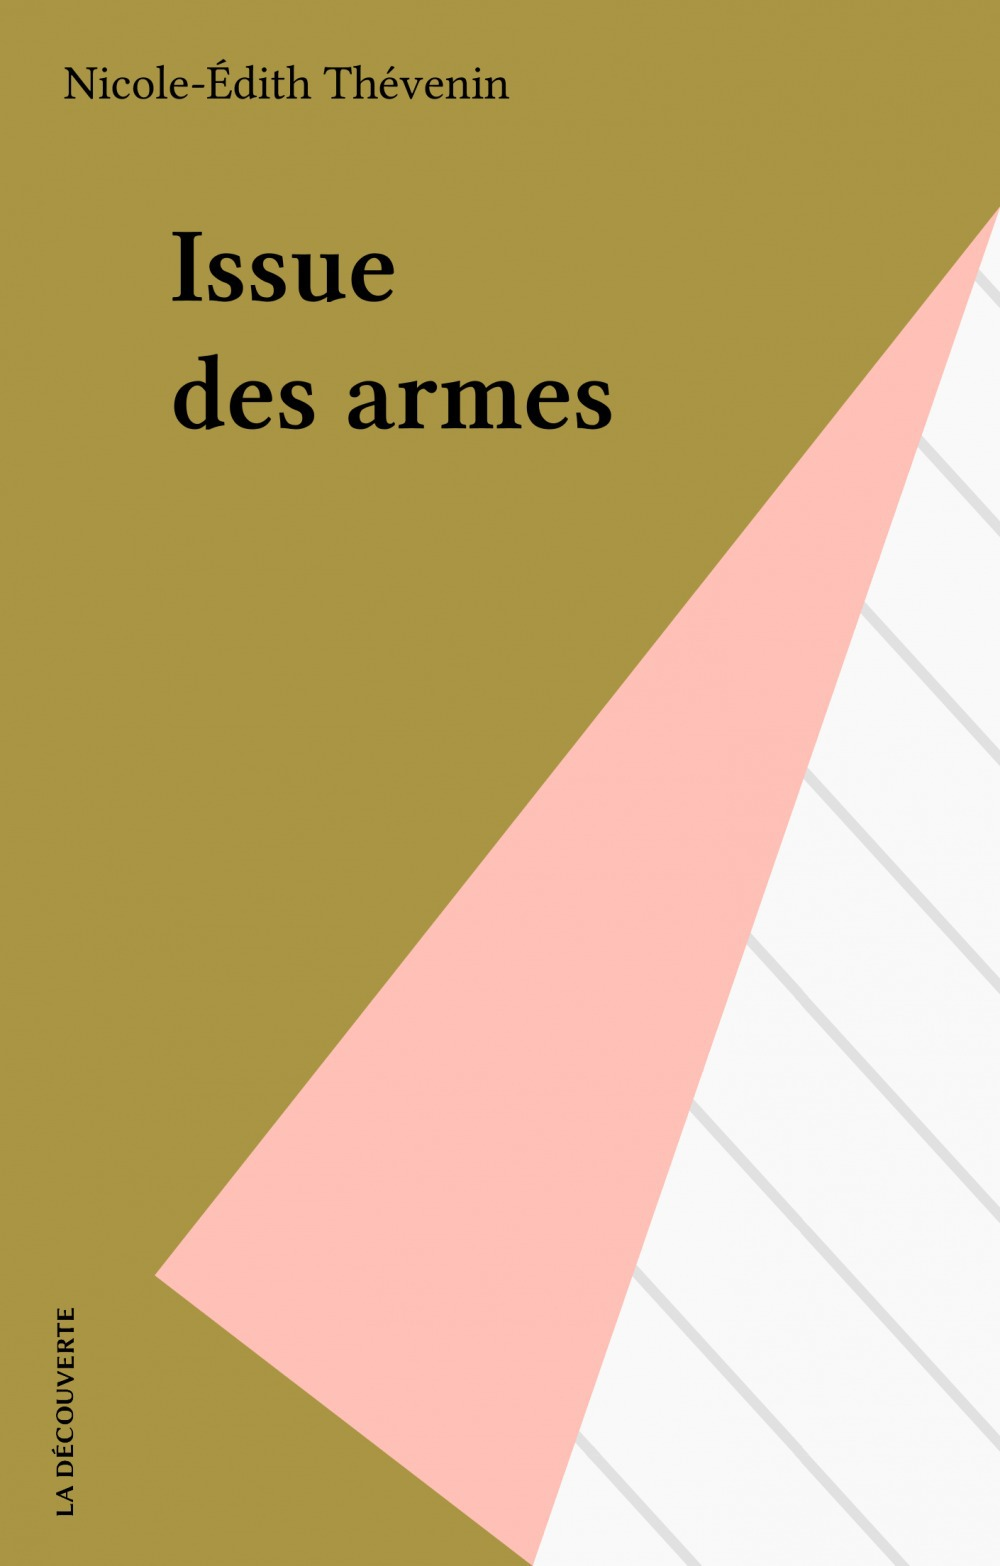 Issue des armes